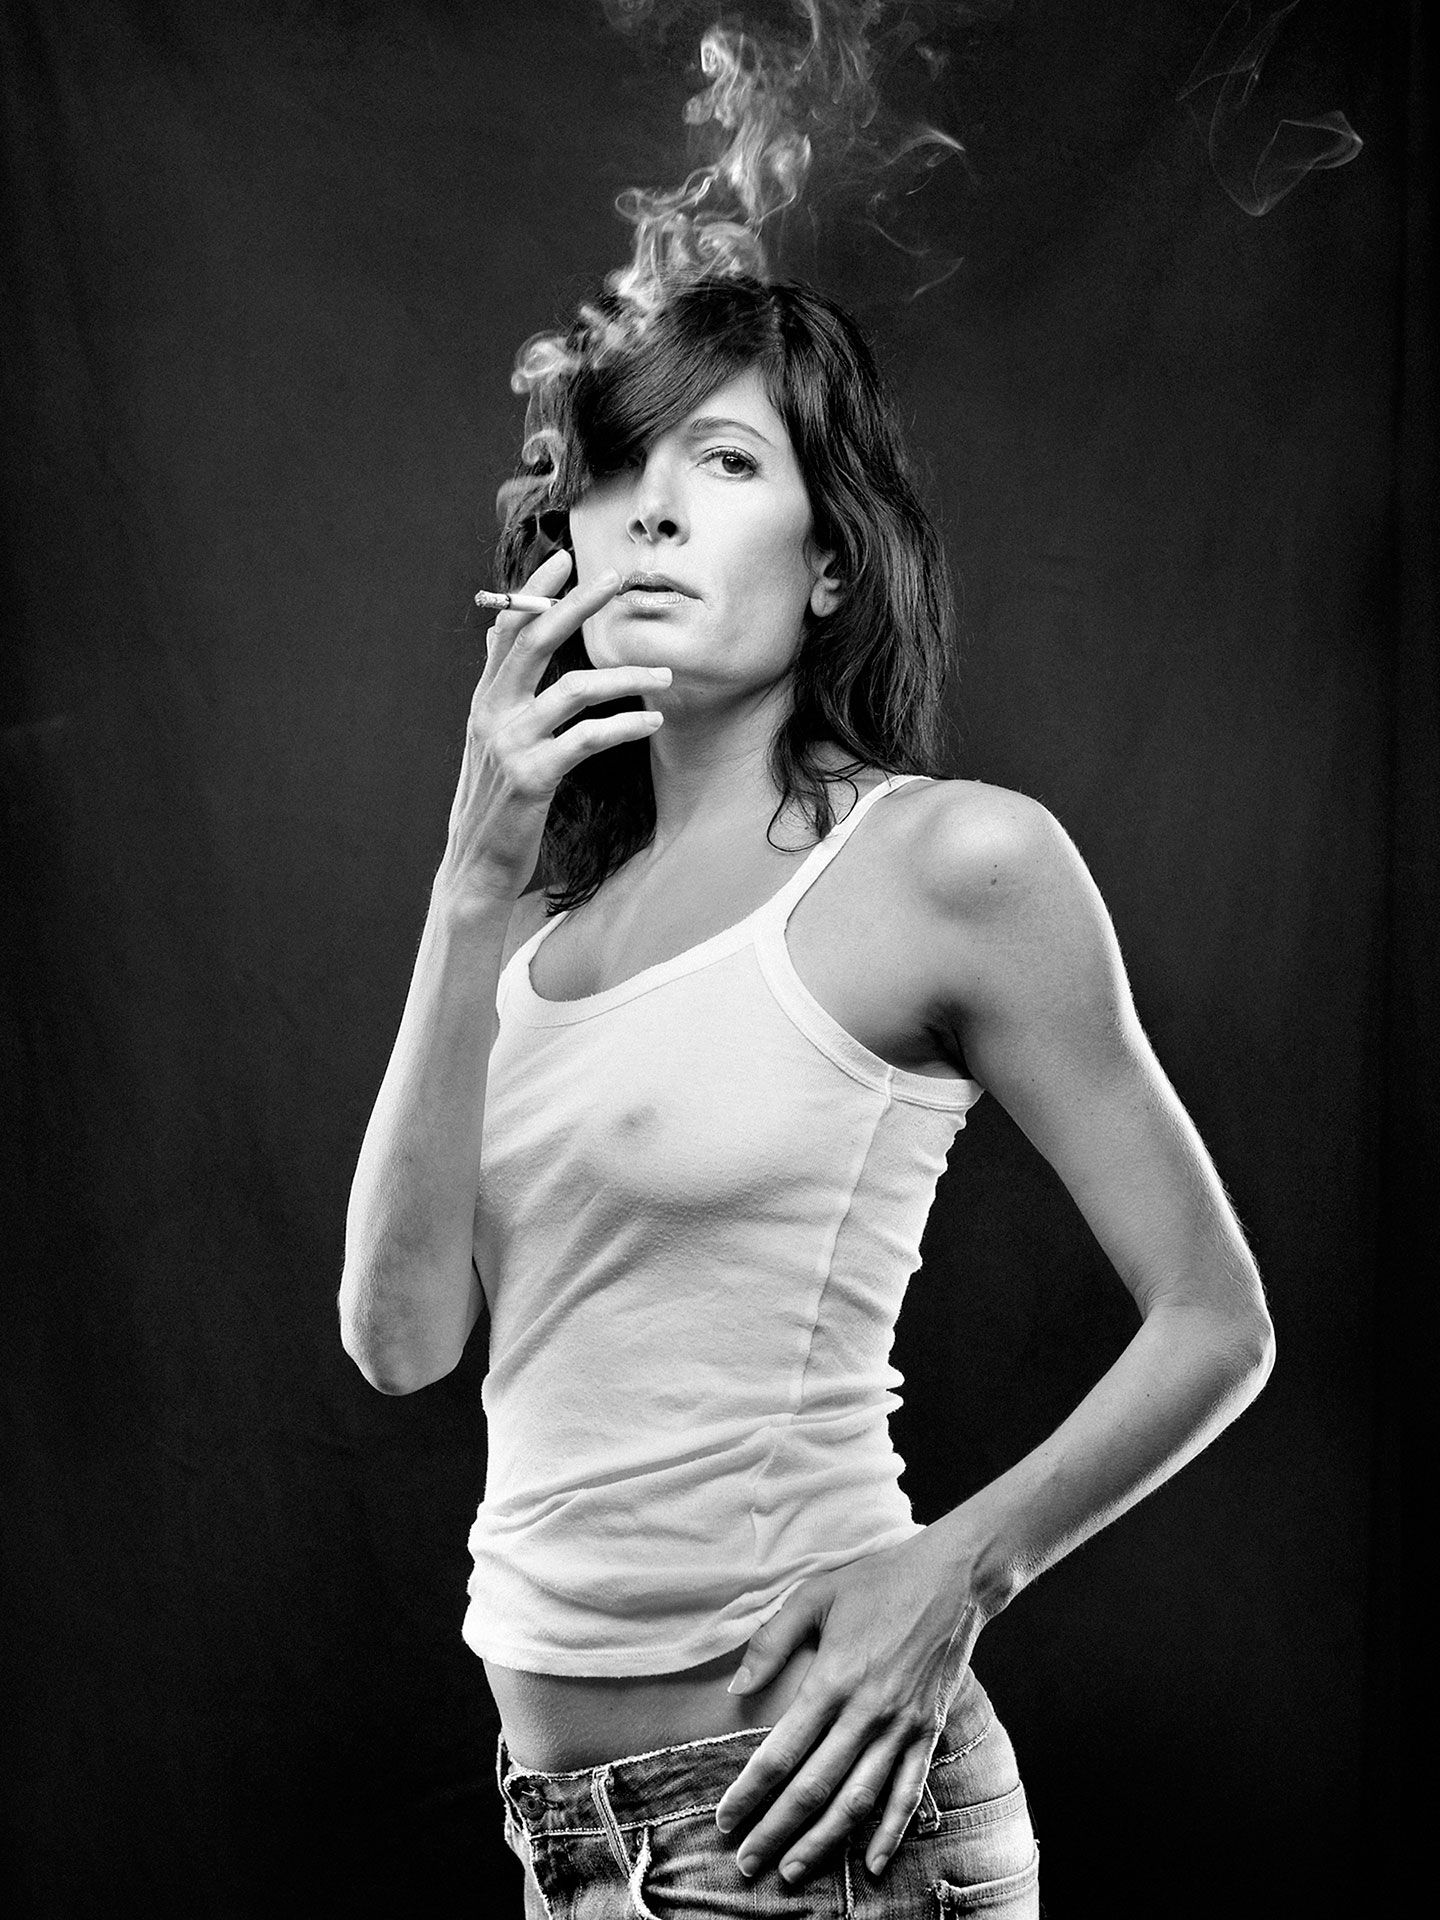 Black and white portrait of actress Anne-Marie Cadieux smoking a cigarette.